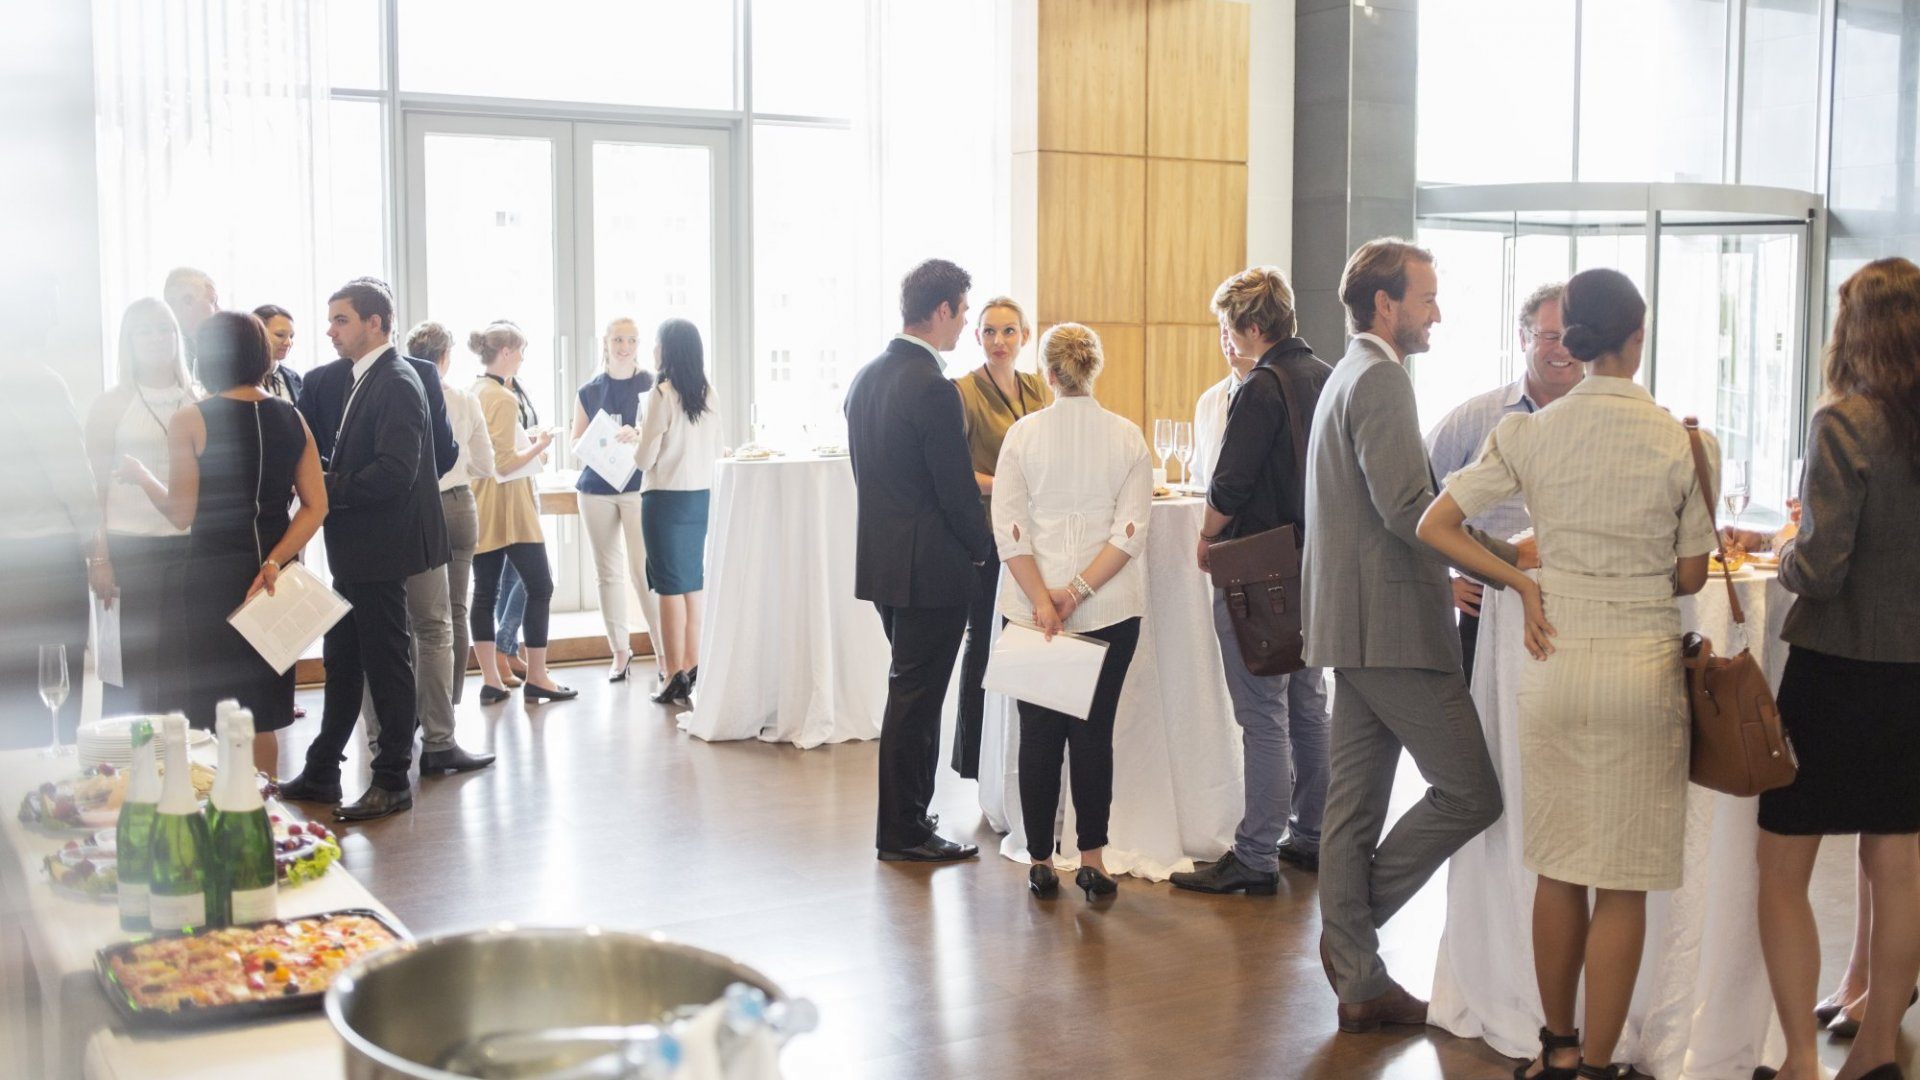 4 Ways to Elicit Invitations to Private Business Events